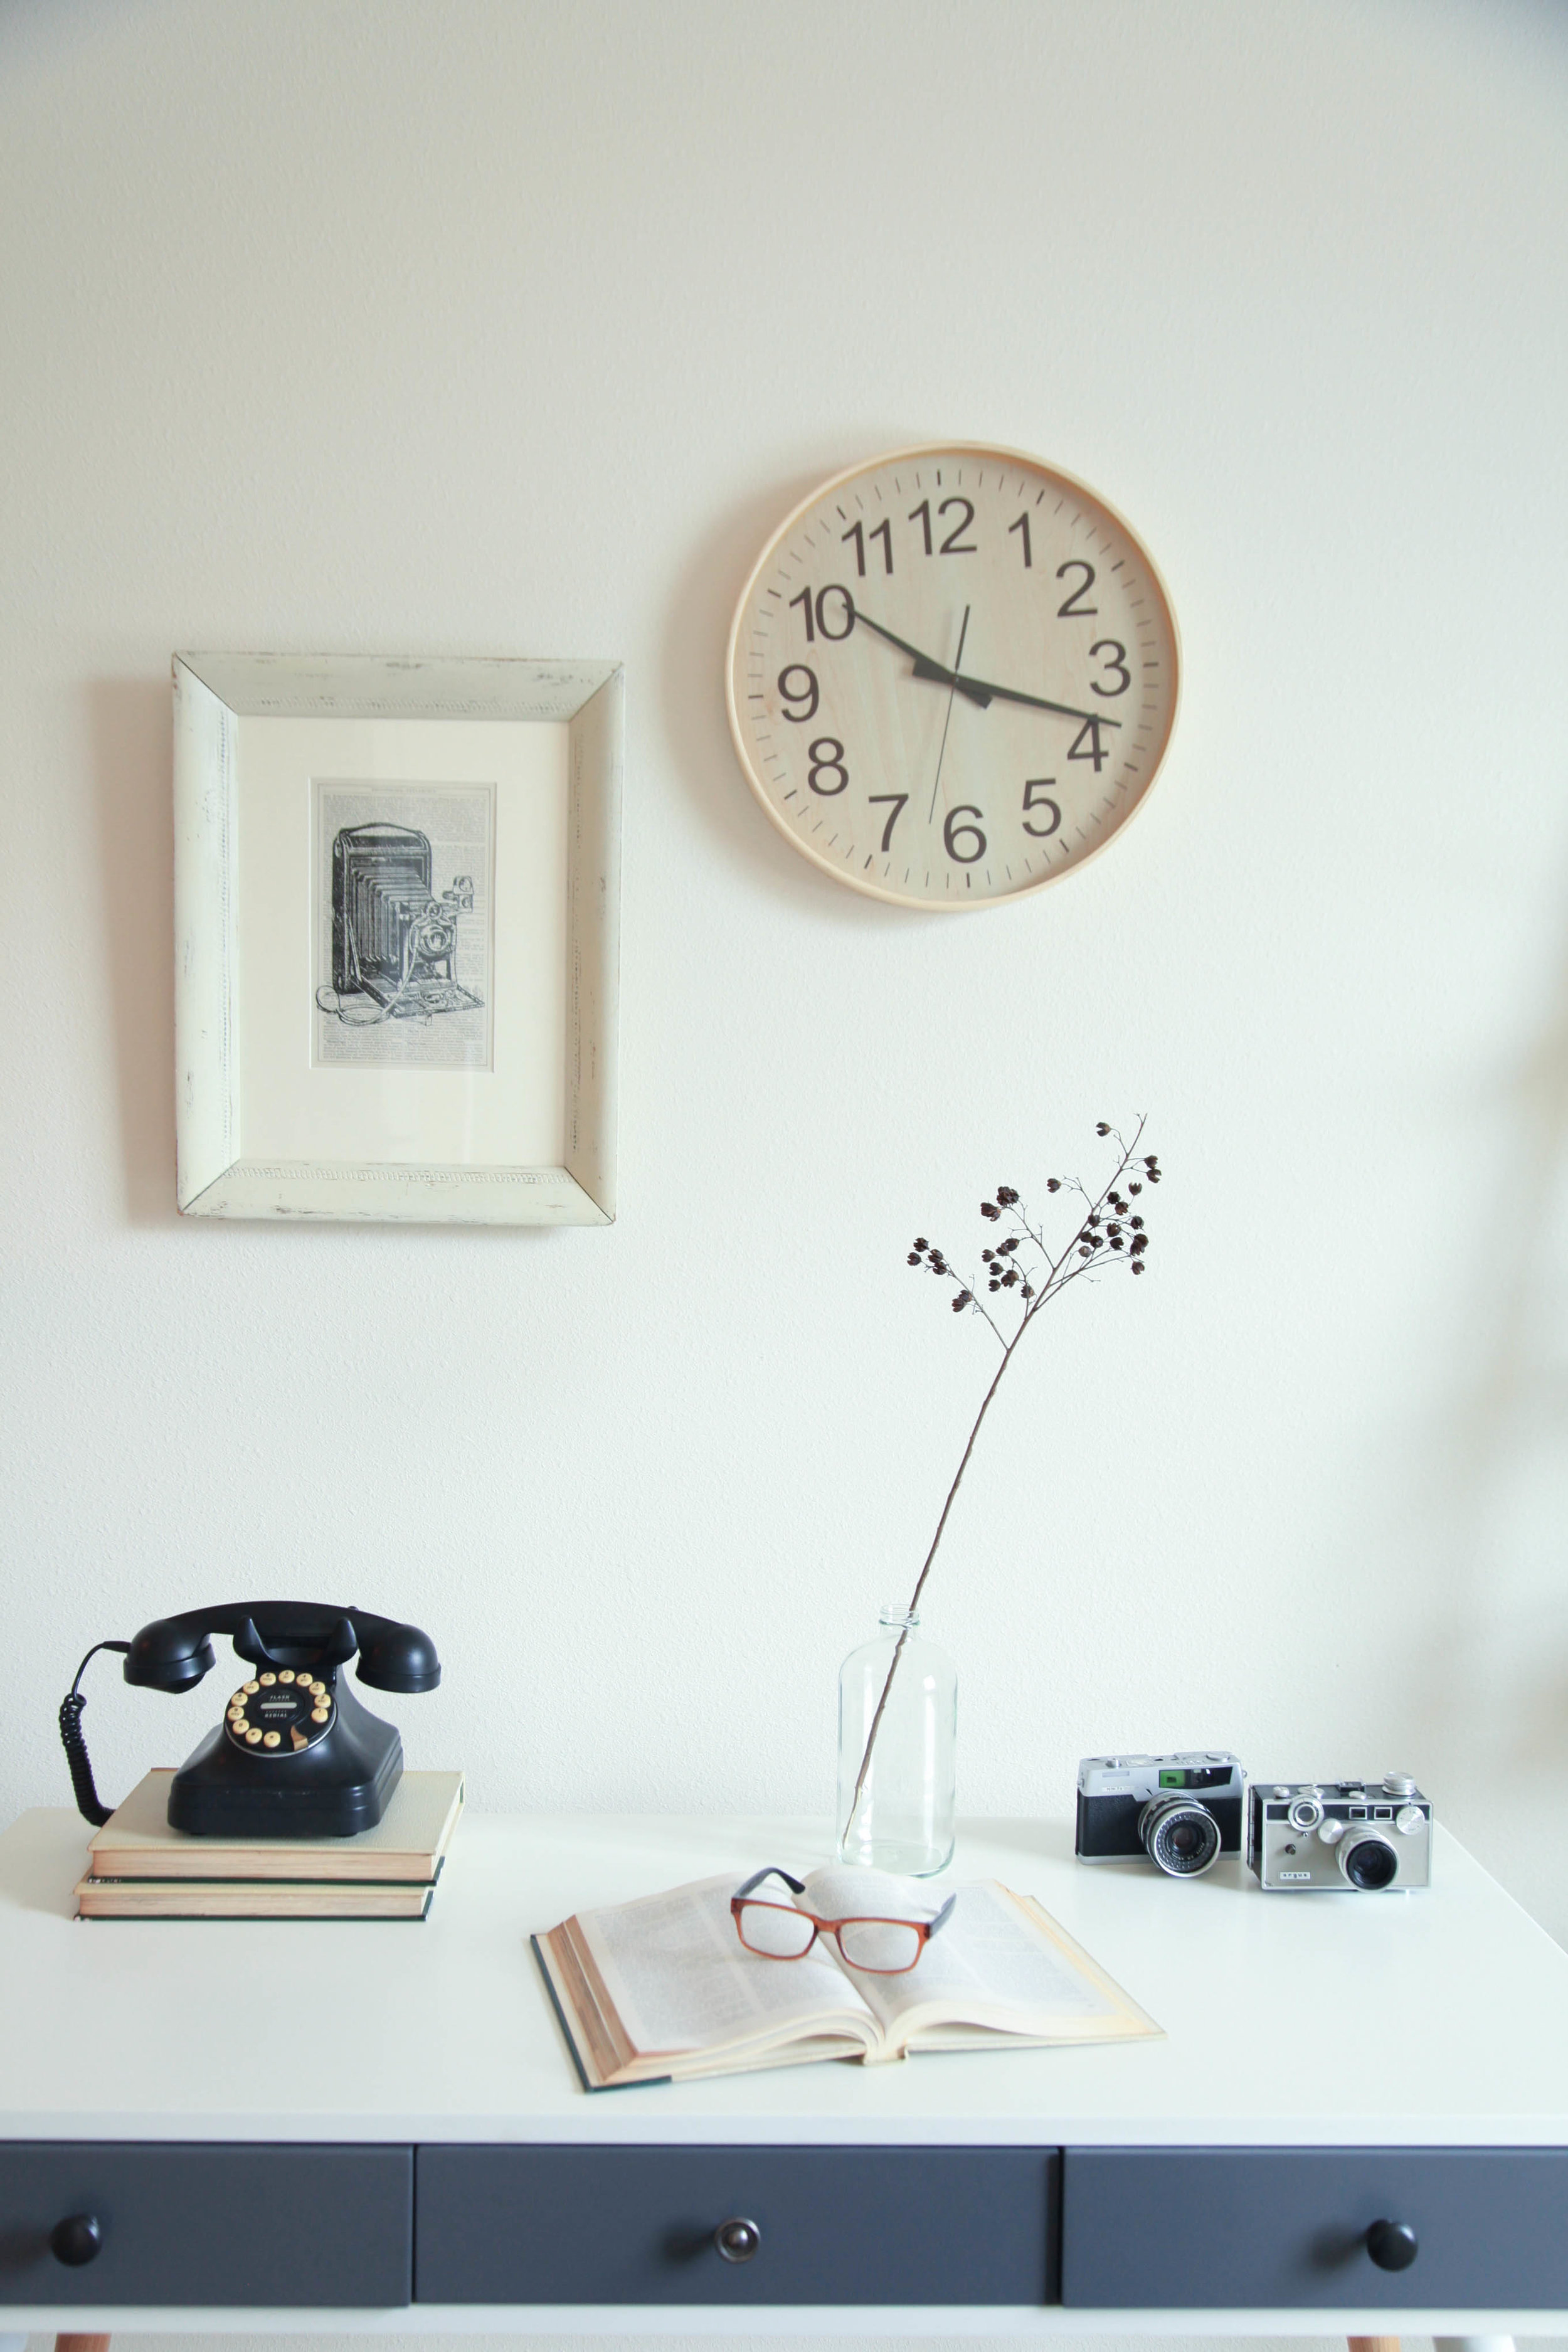 Accessorize with vintage items such as a phone and cameras